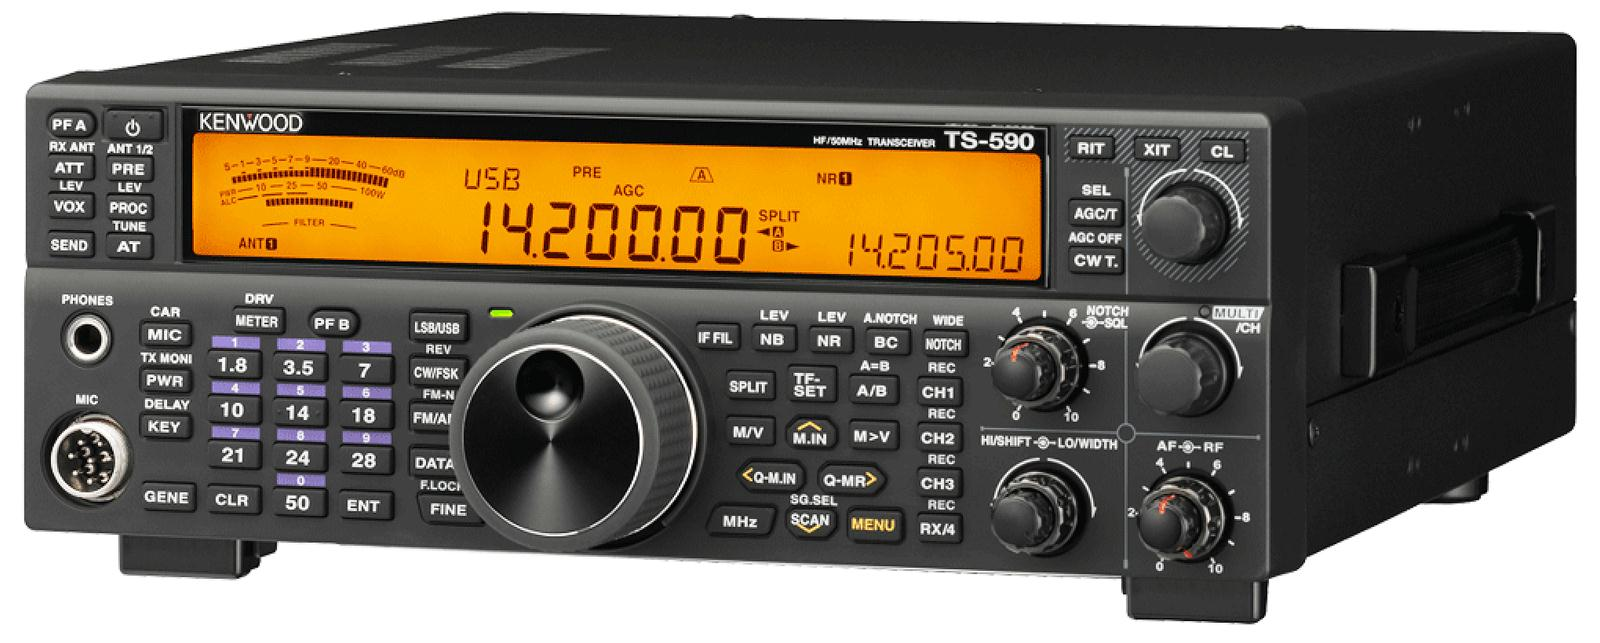 Kenwood TS-590SG HF/6 Meter Base Transceivers TS-590SG - Free Shipping on  Most Orders Over $99 at DX Engineering